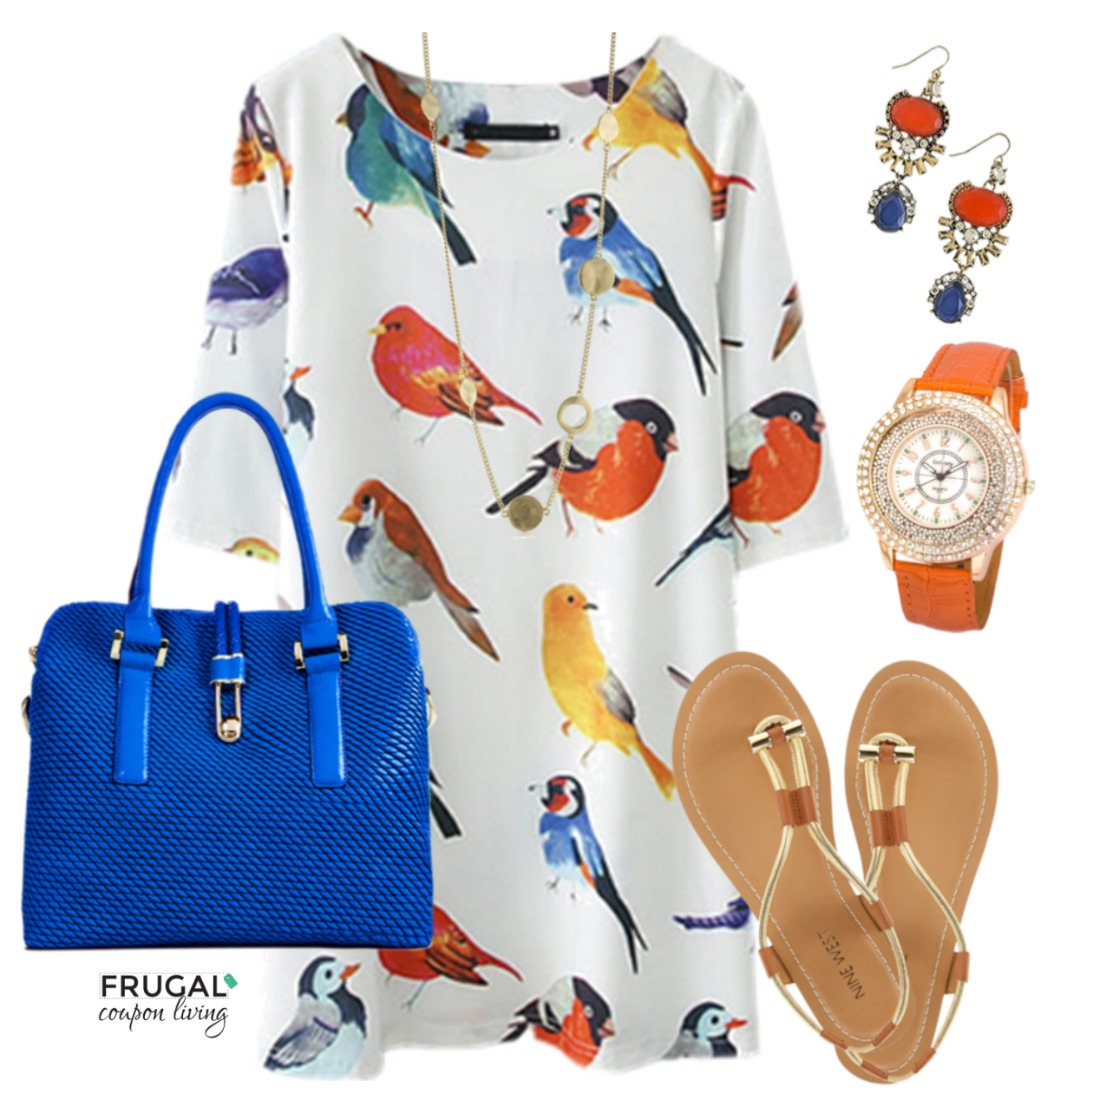 Frugal-Fashion-Friday-Bird-Dress-Outfit-Frugal-Coupon-Living